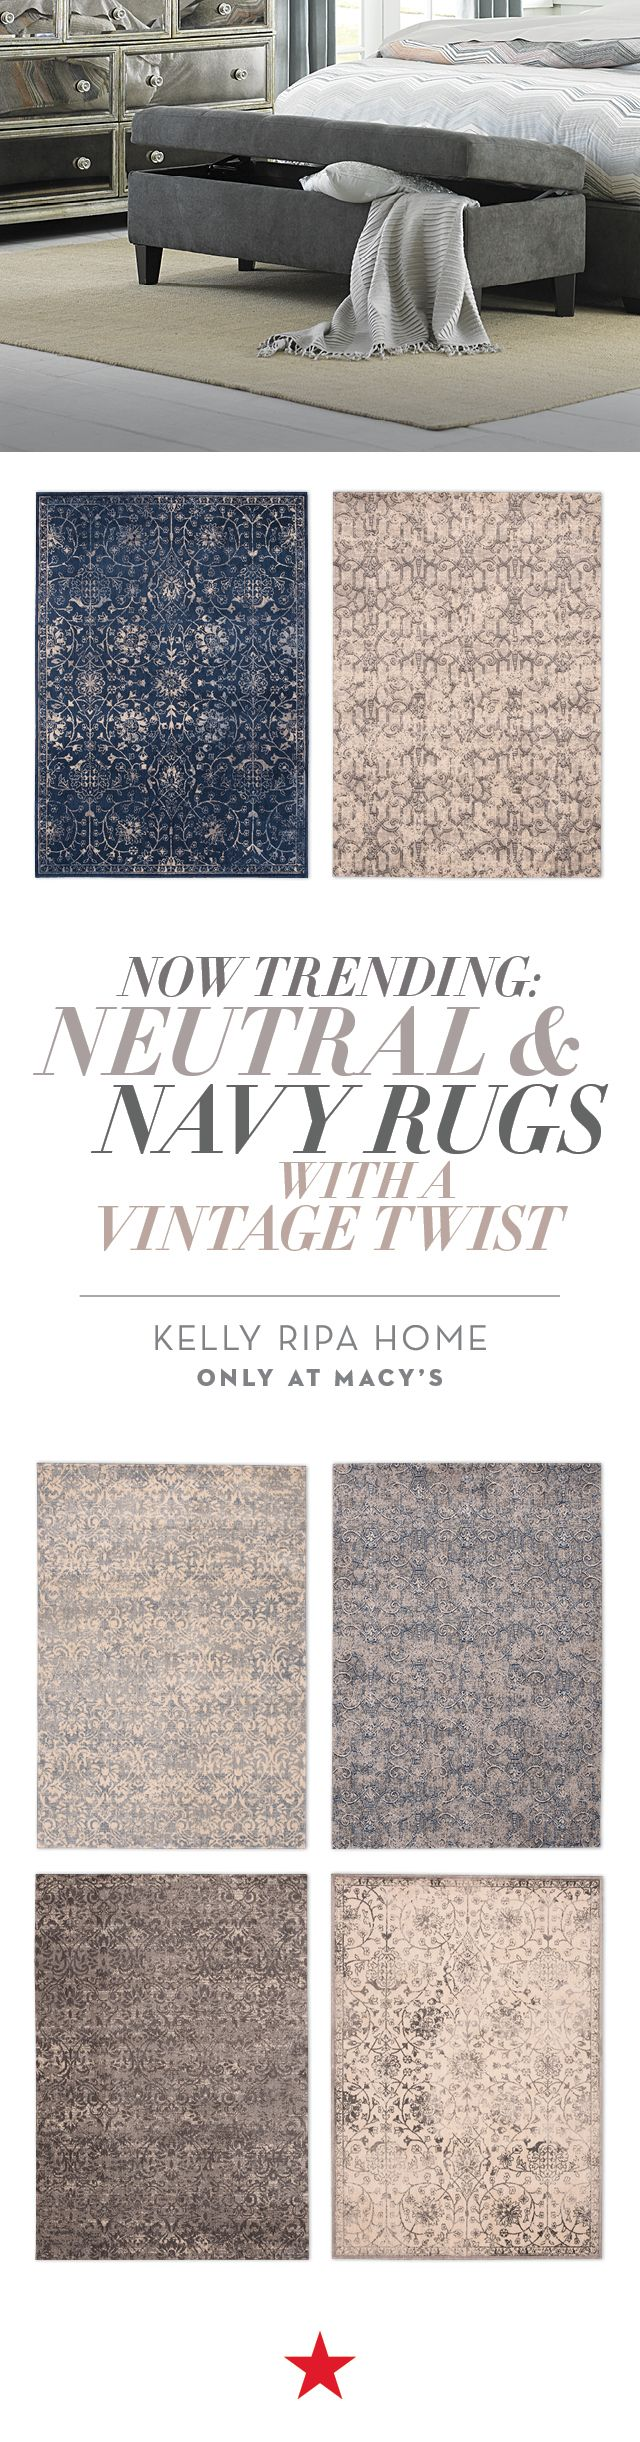 Kelly Ripa just launched her new home collection at Macy's! From bedding and pillows to furniture and rugs, the line has everything you need to create the look of your dreams.